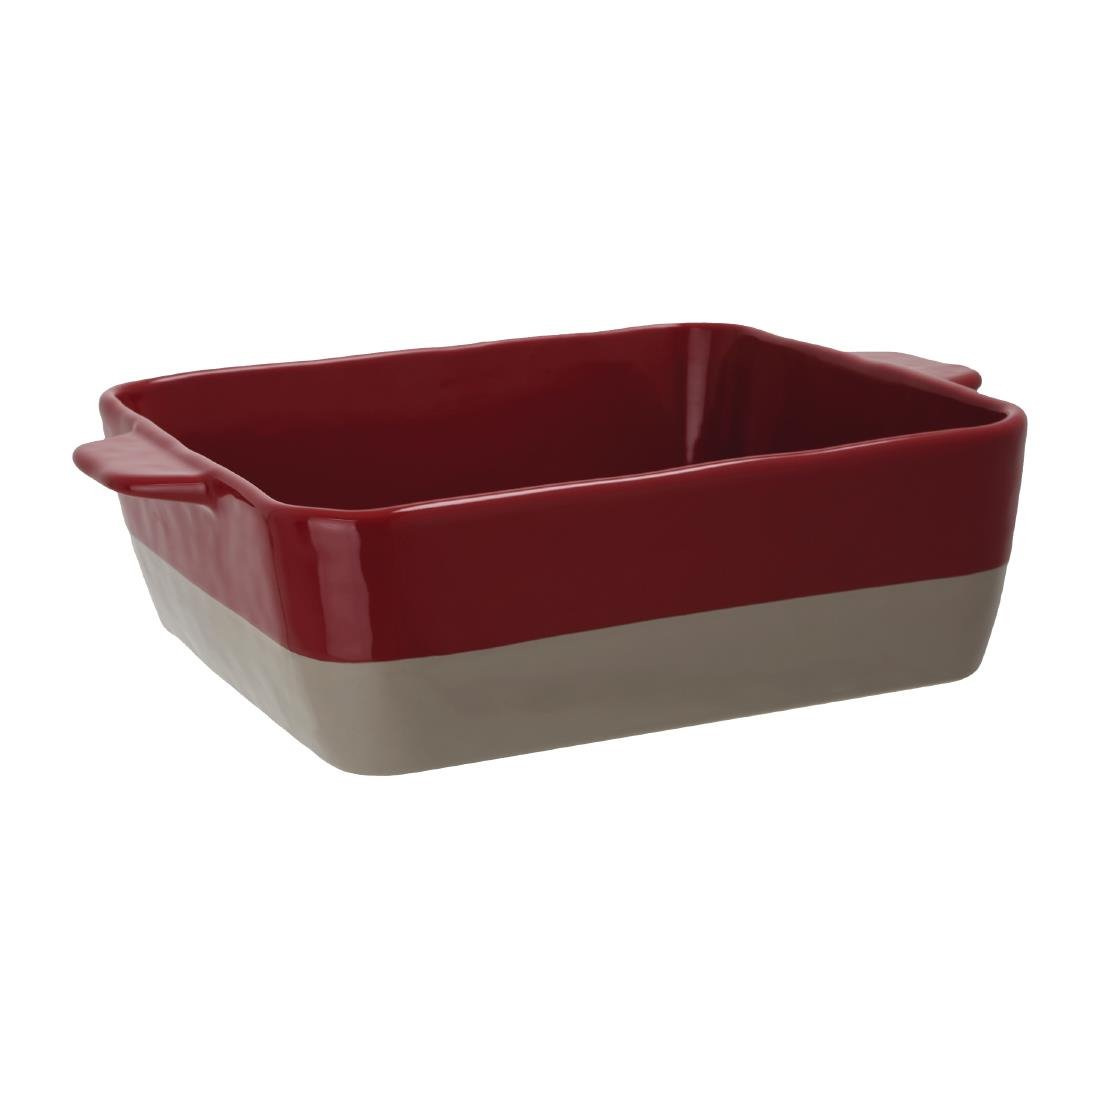 Olympia Red And Taupe Ceramic Roasting Dish 4.2Ltr